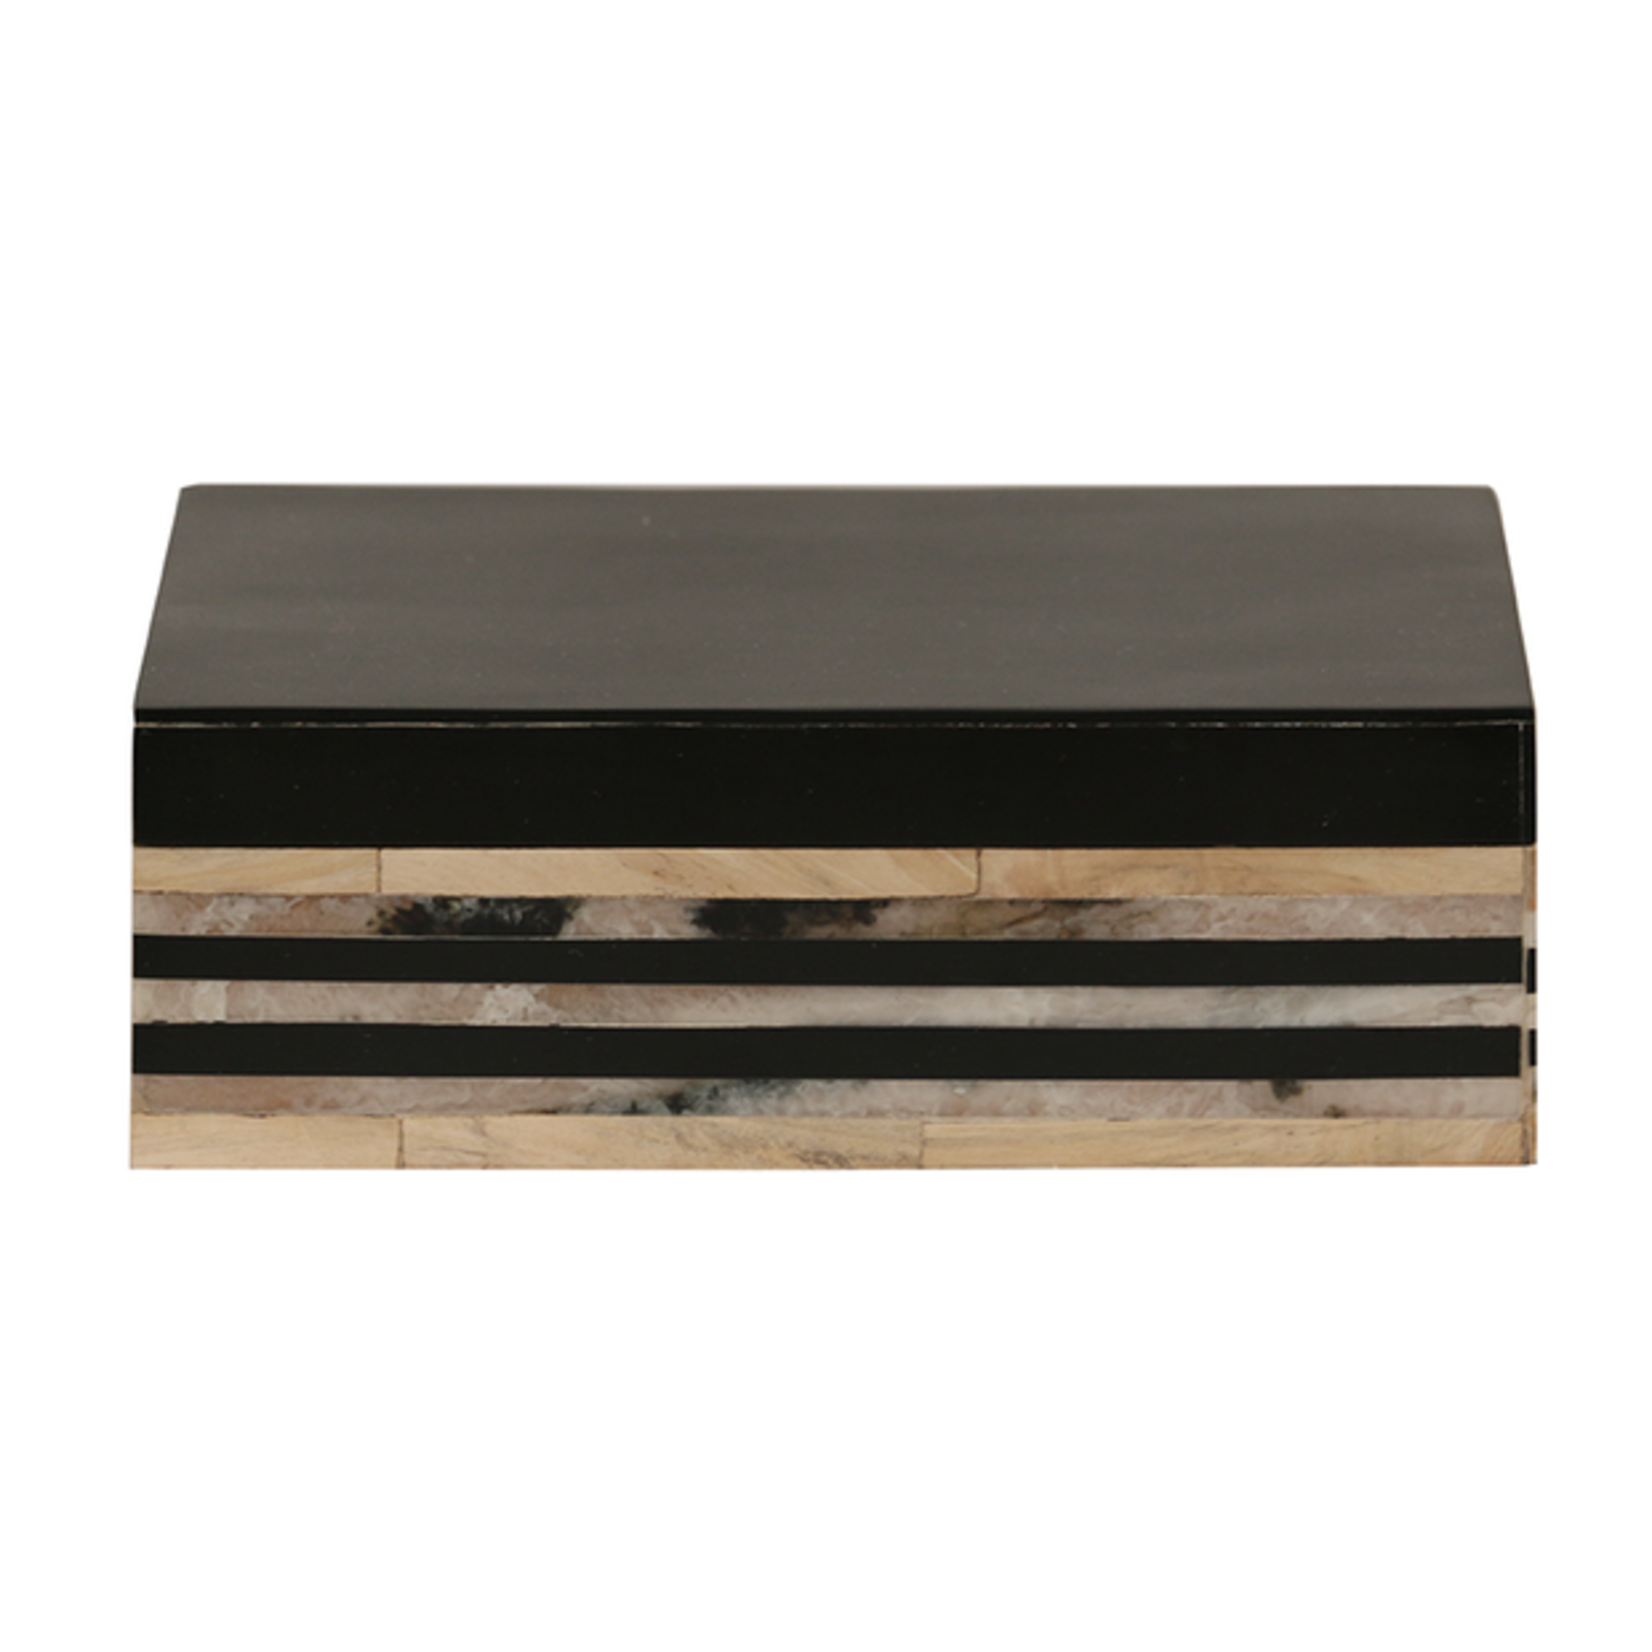 CC Interiors Veneer Style Wooden Box with Black Lid